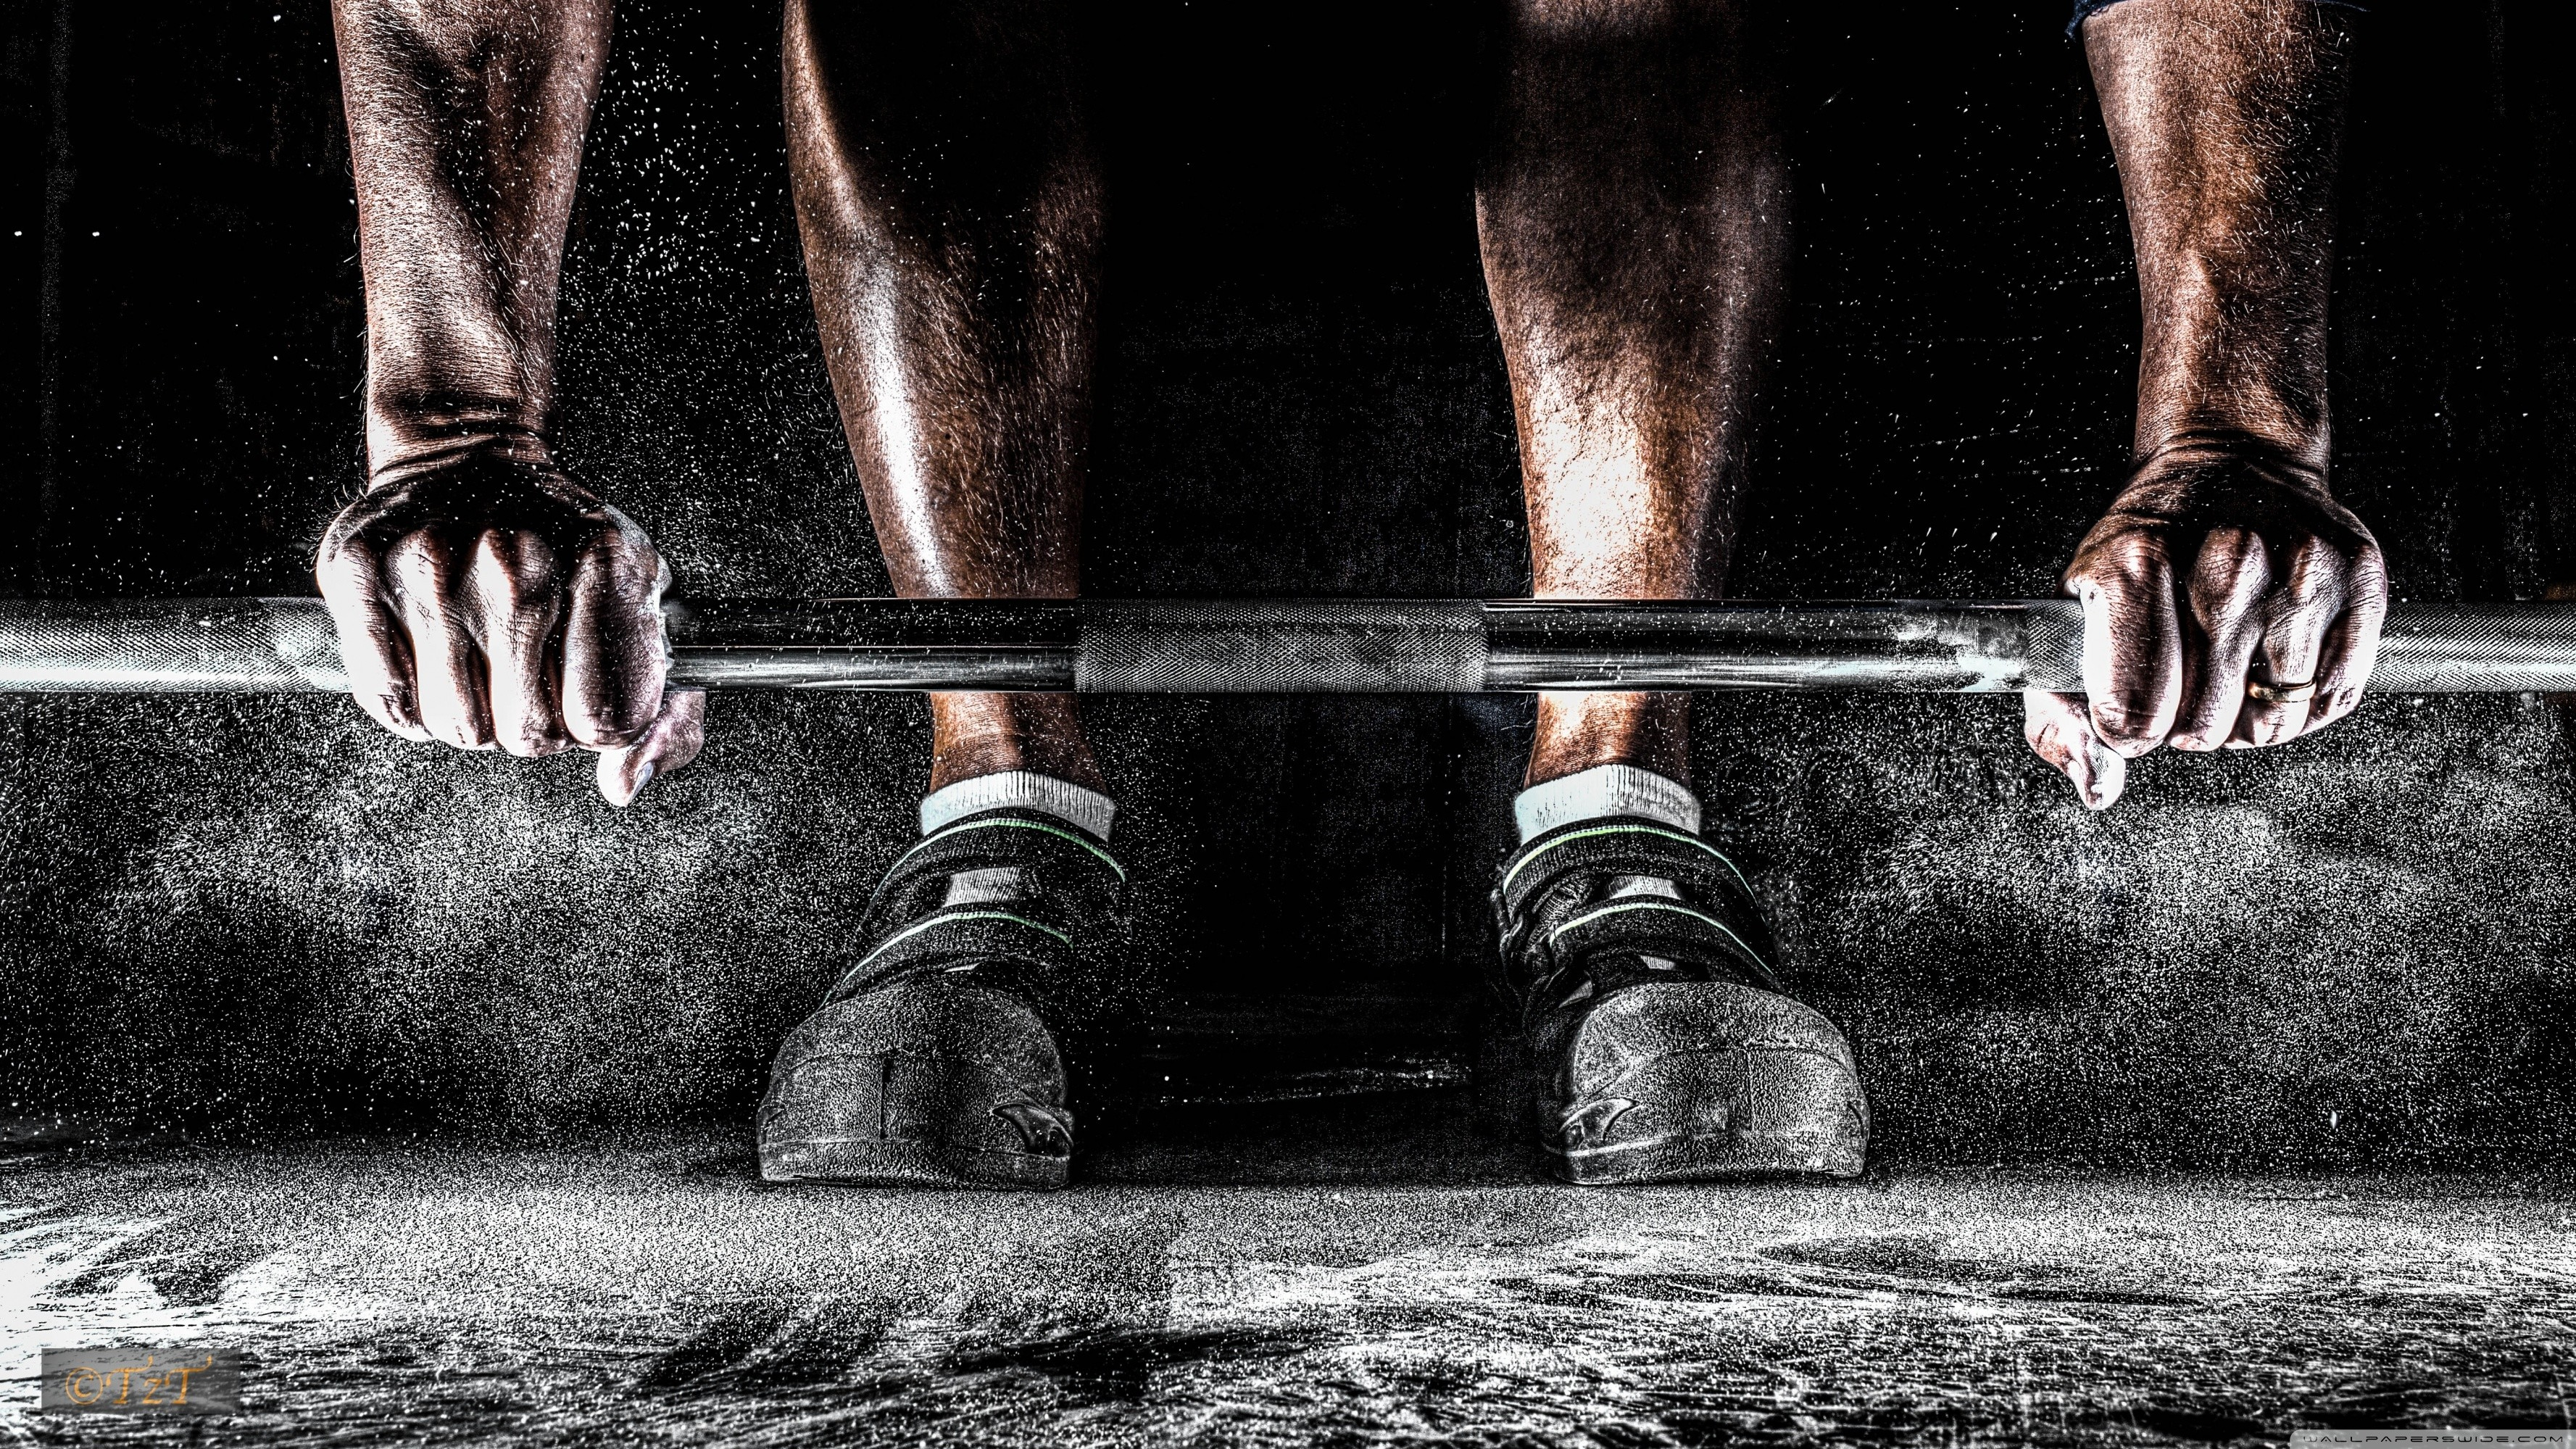 71 Hd Workout Wallpapers on WallpaperPlay 3554x1999